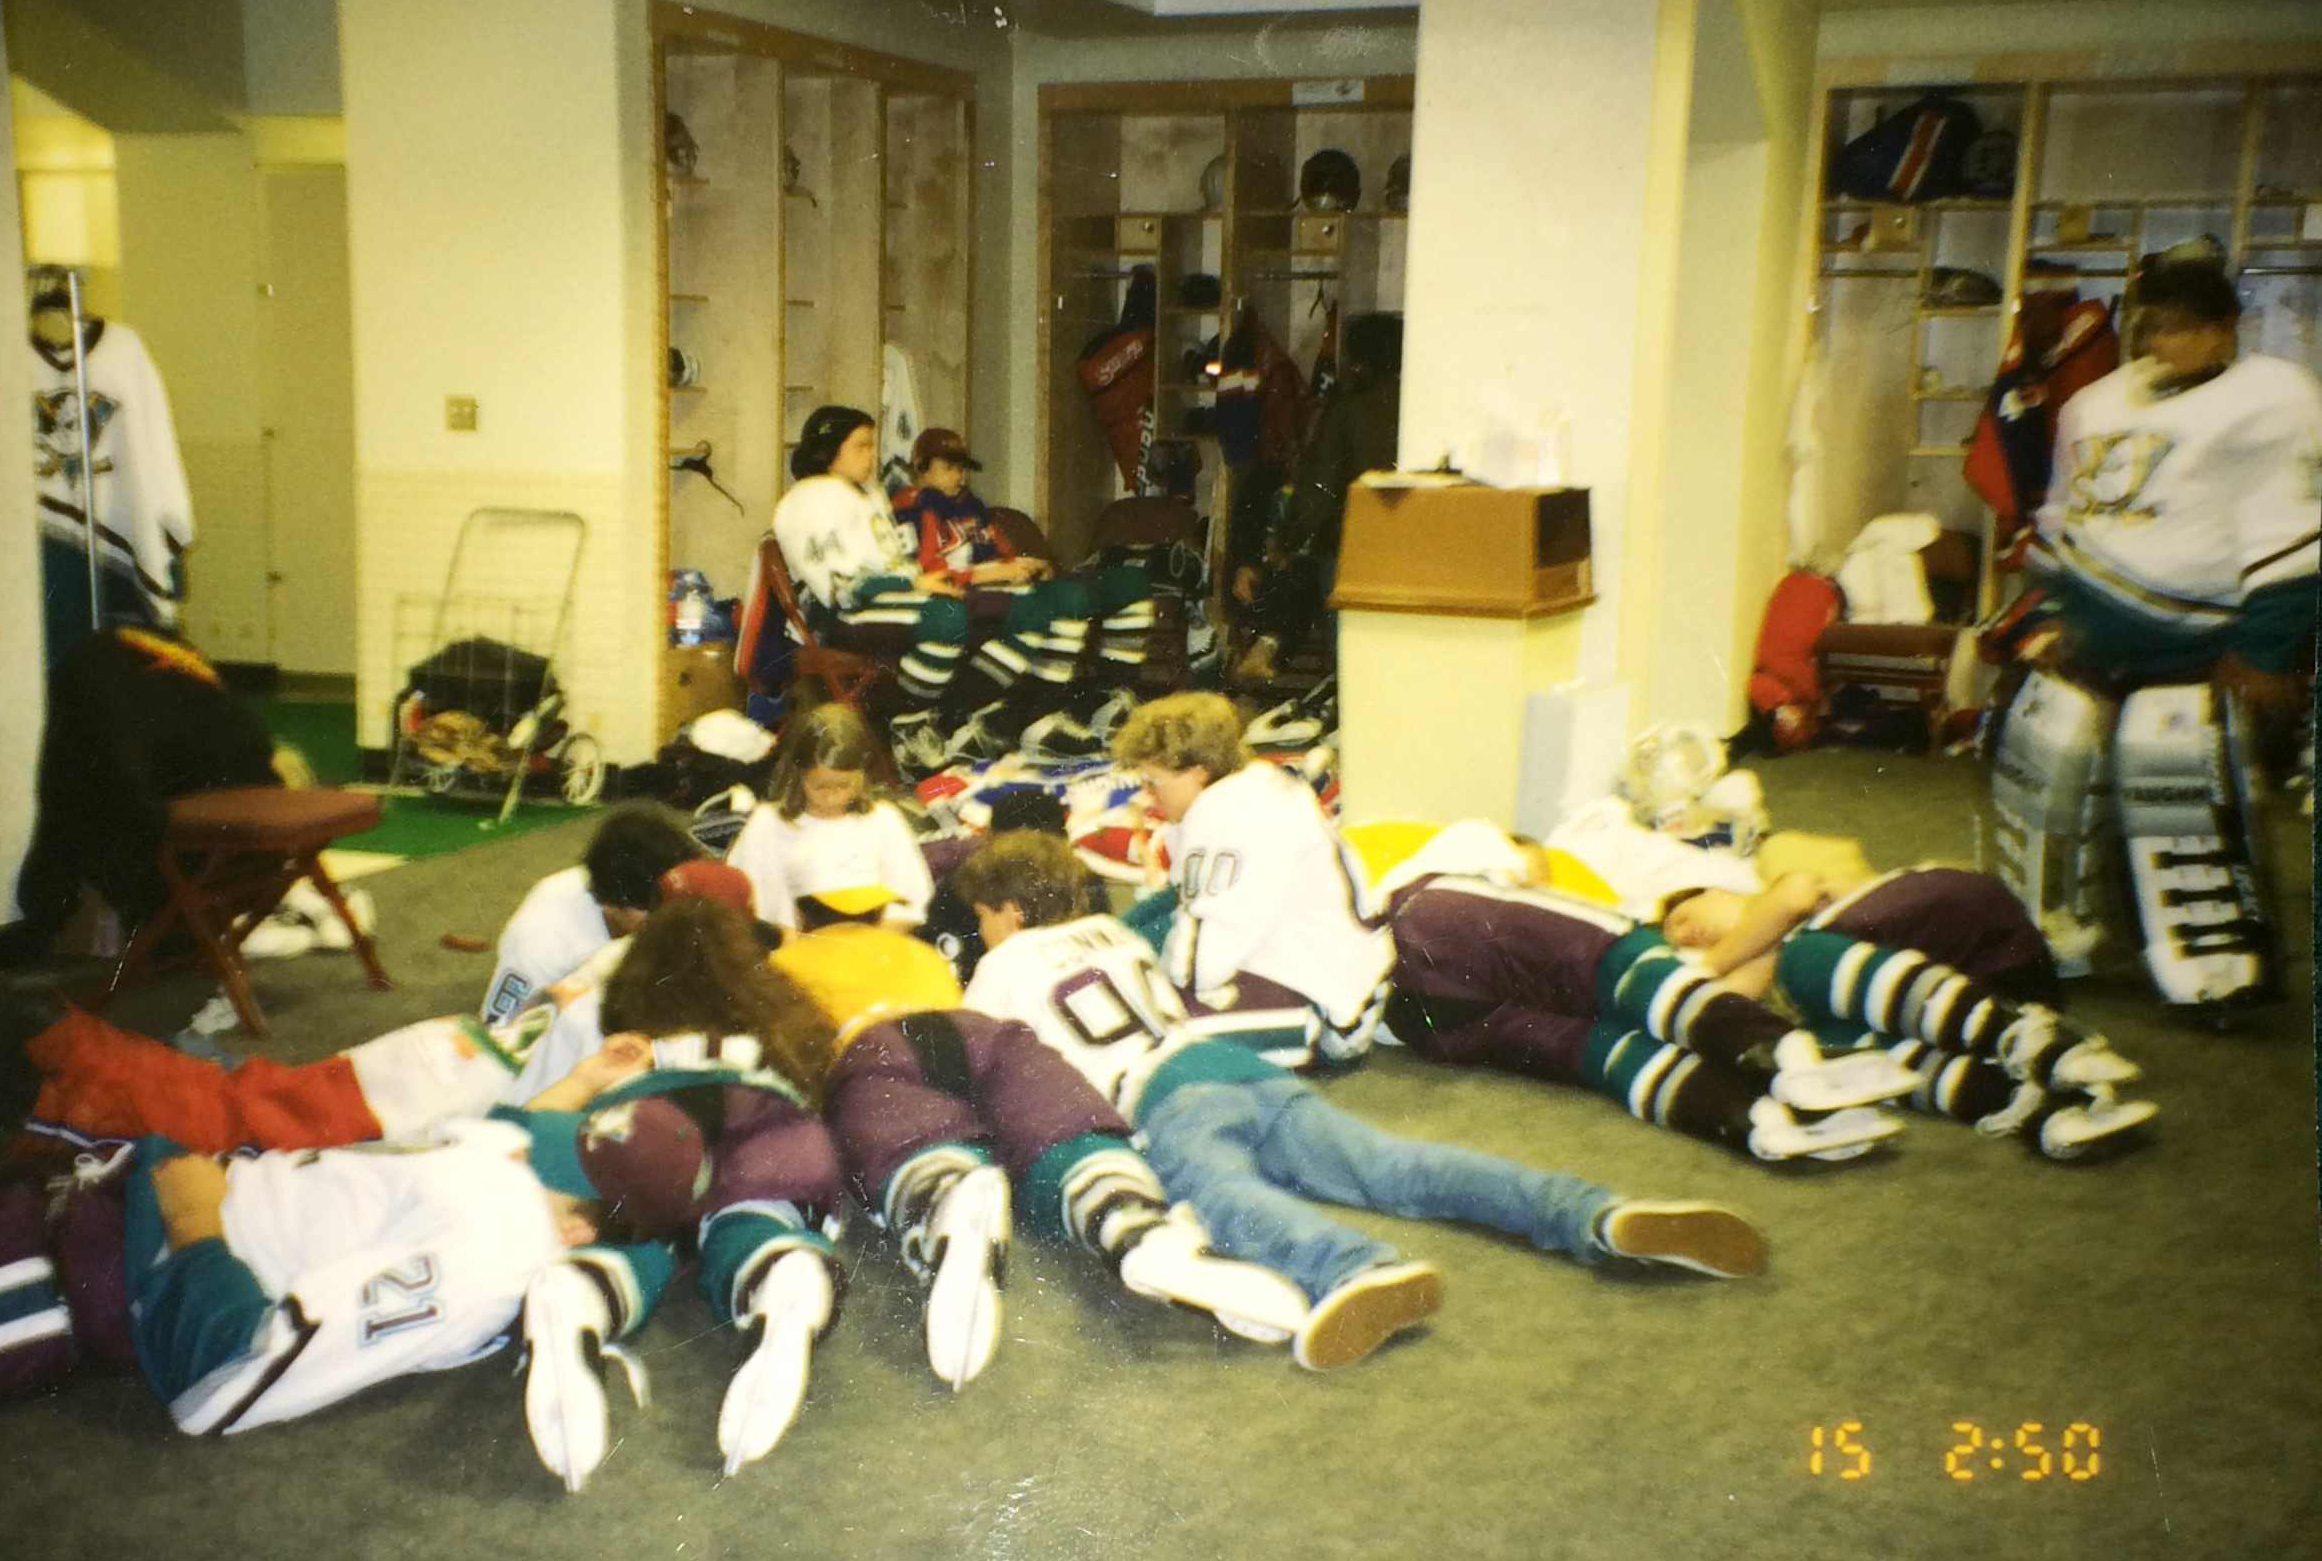 The Mighty Ducks cast hang out in the locker room.